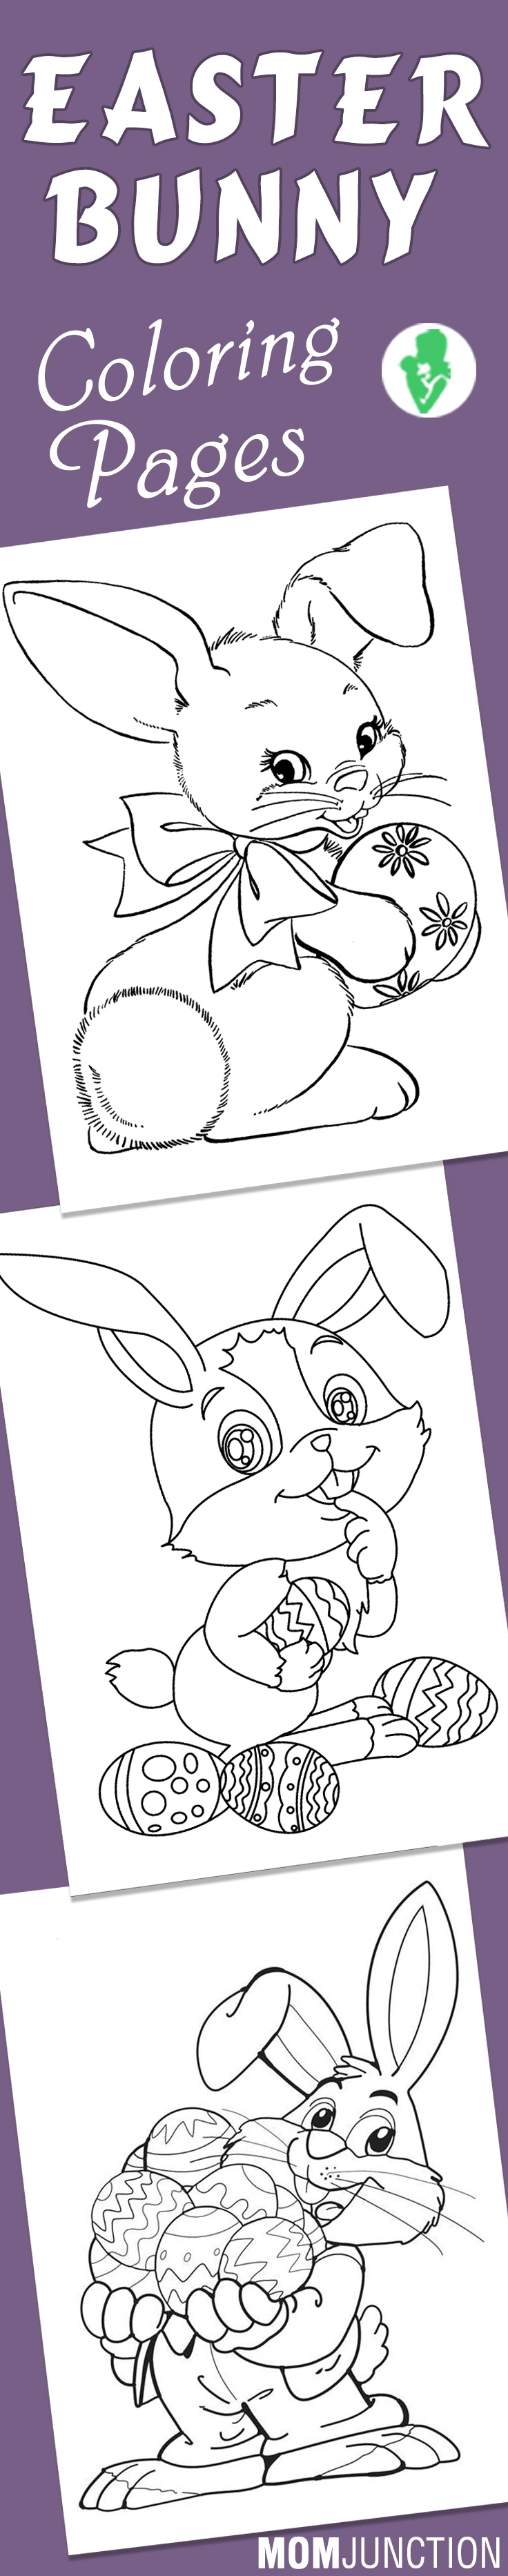 Top 15 Free Printable Easter Bunny Coloring Pages Online | Aula y ...